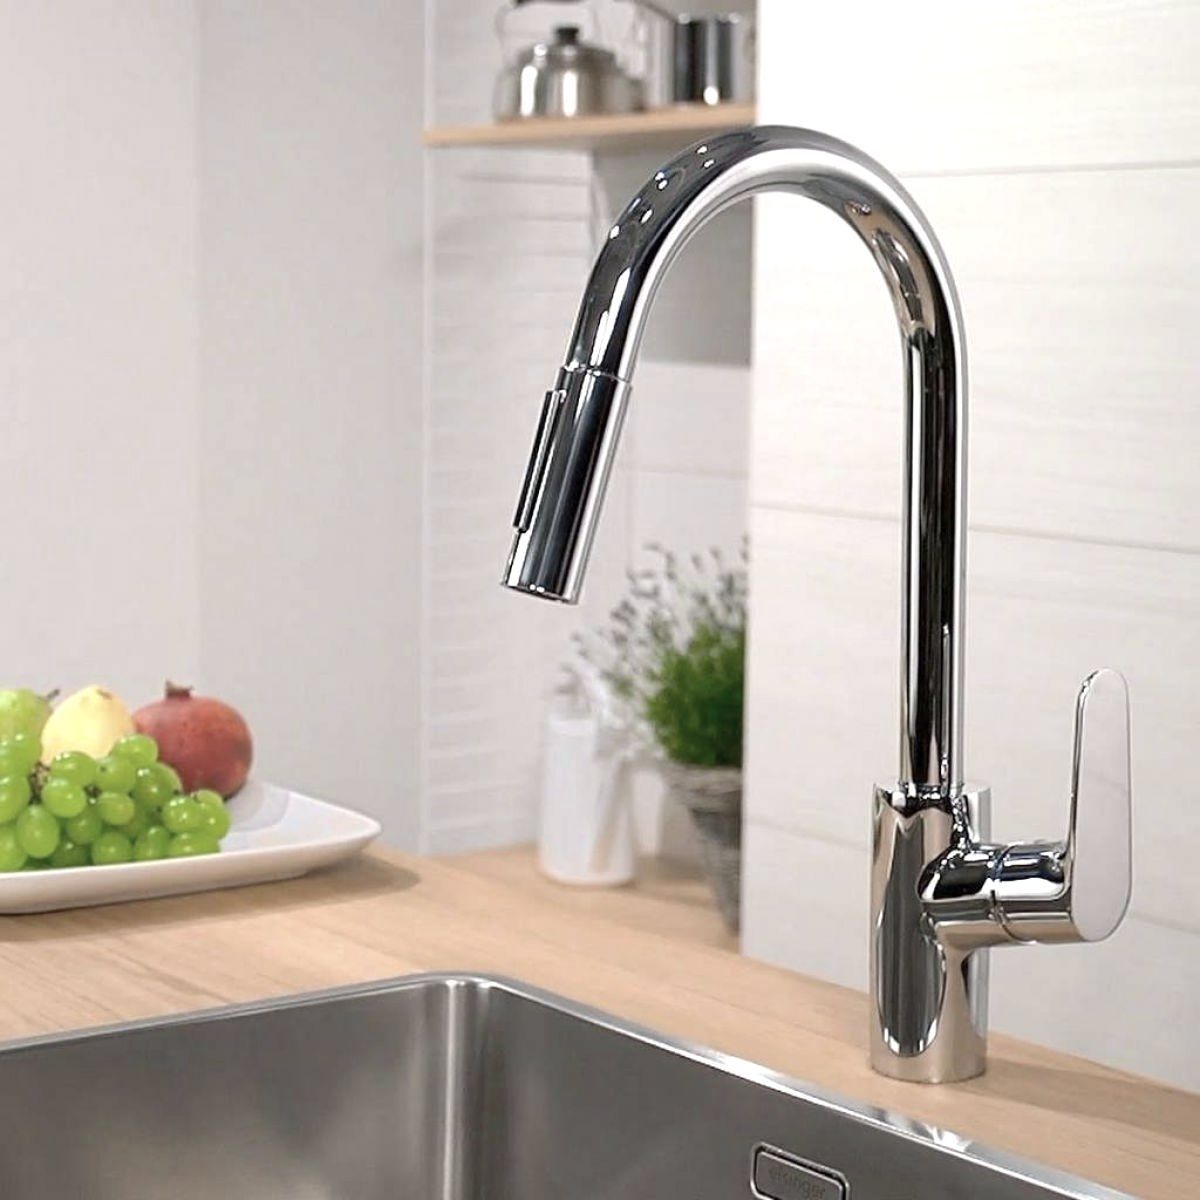 hansgrohe focus 240 kitchen mixer tap with pull out spray. Black Bedroom Furniture Sets. Home Design Ideas